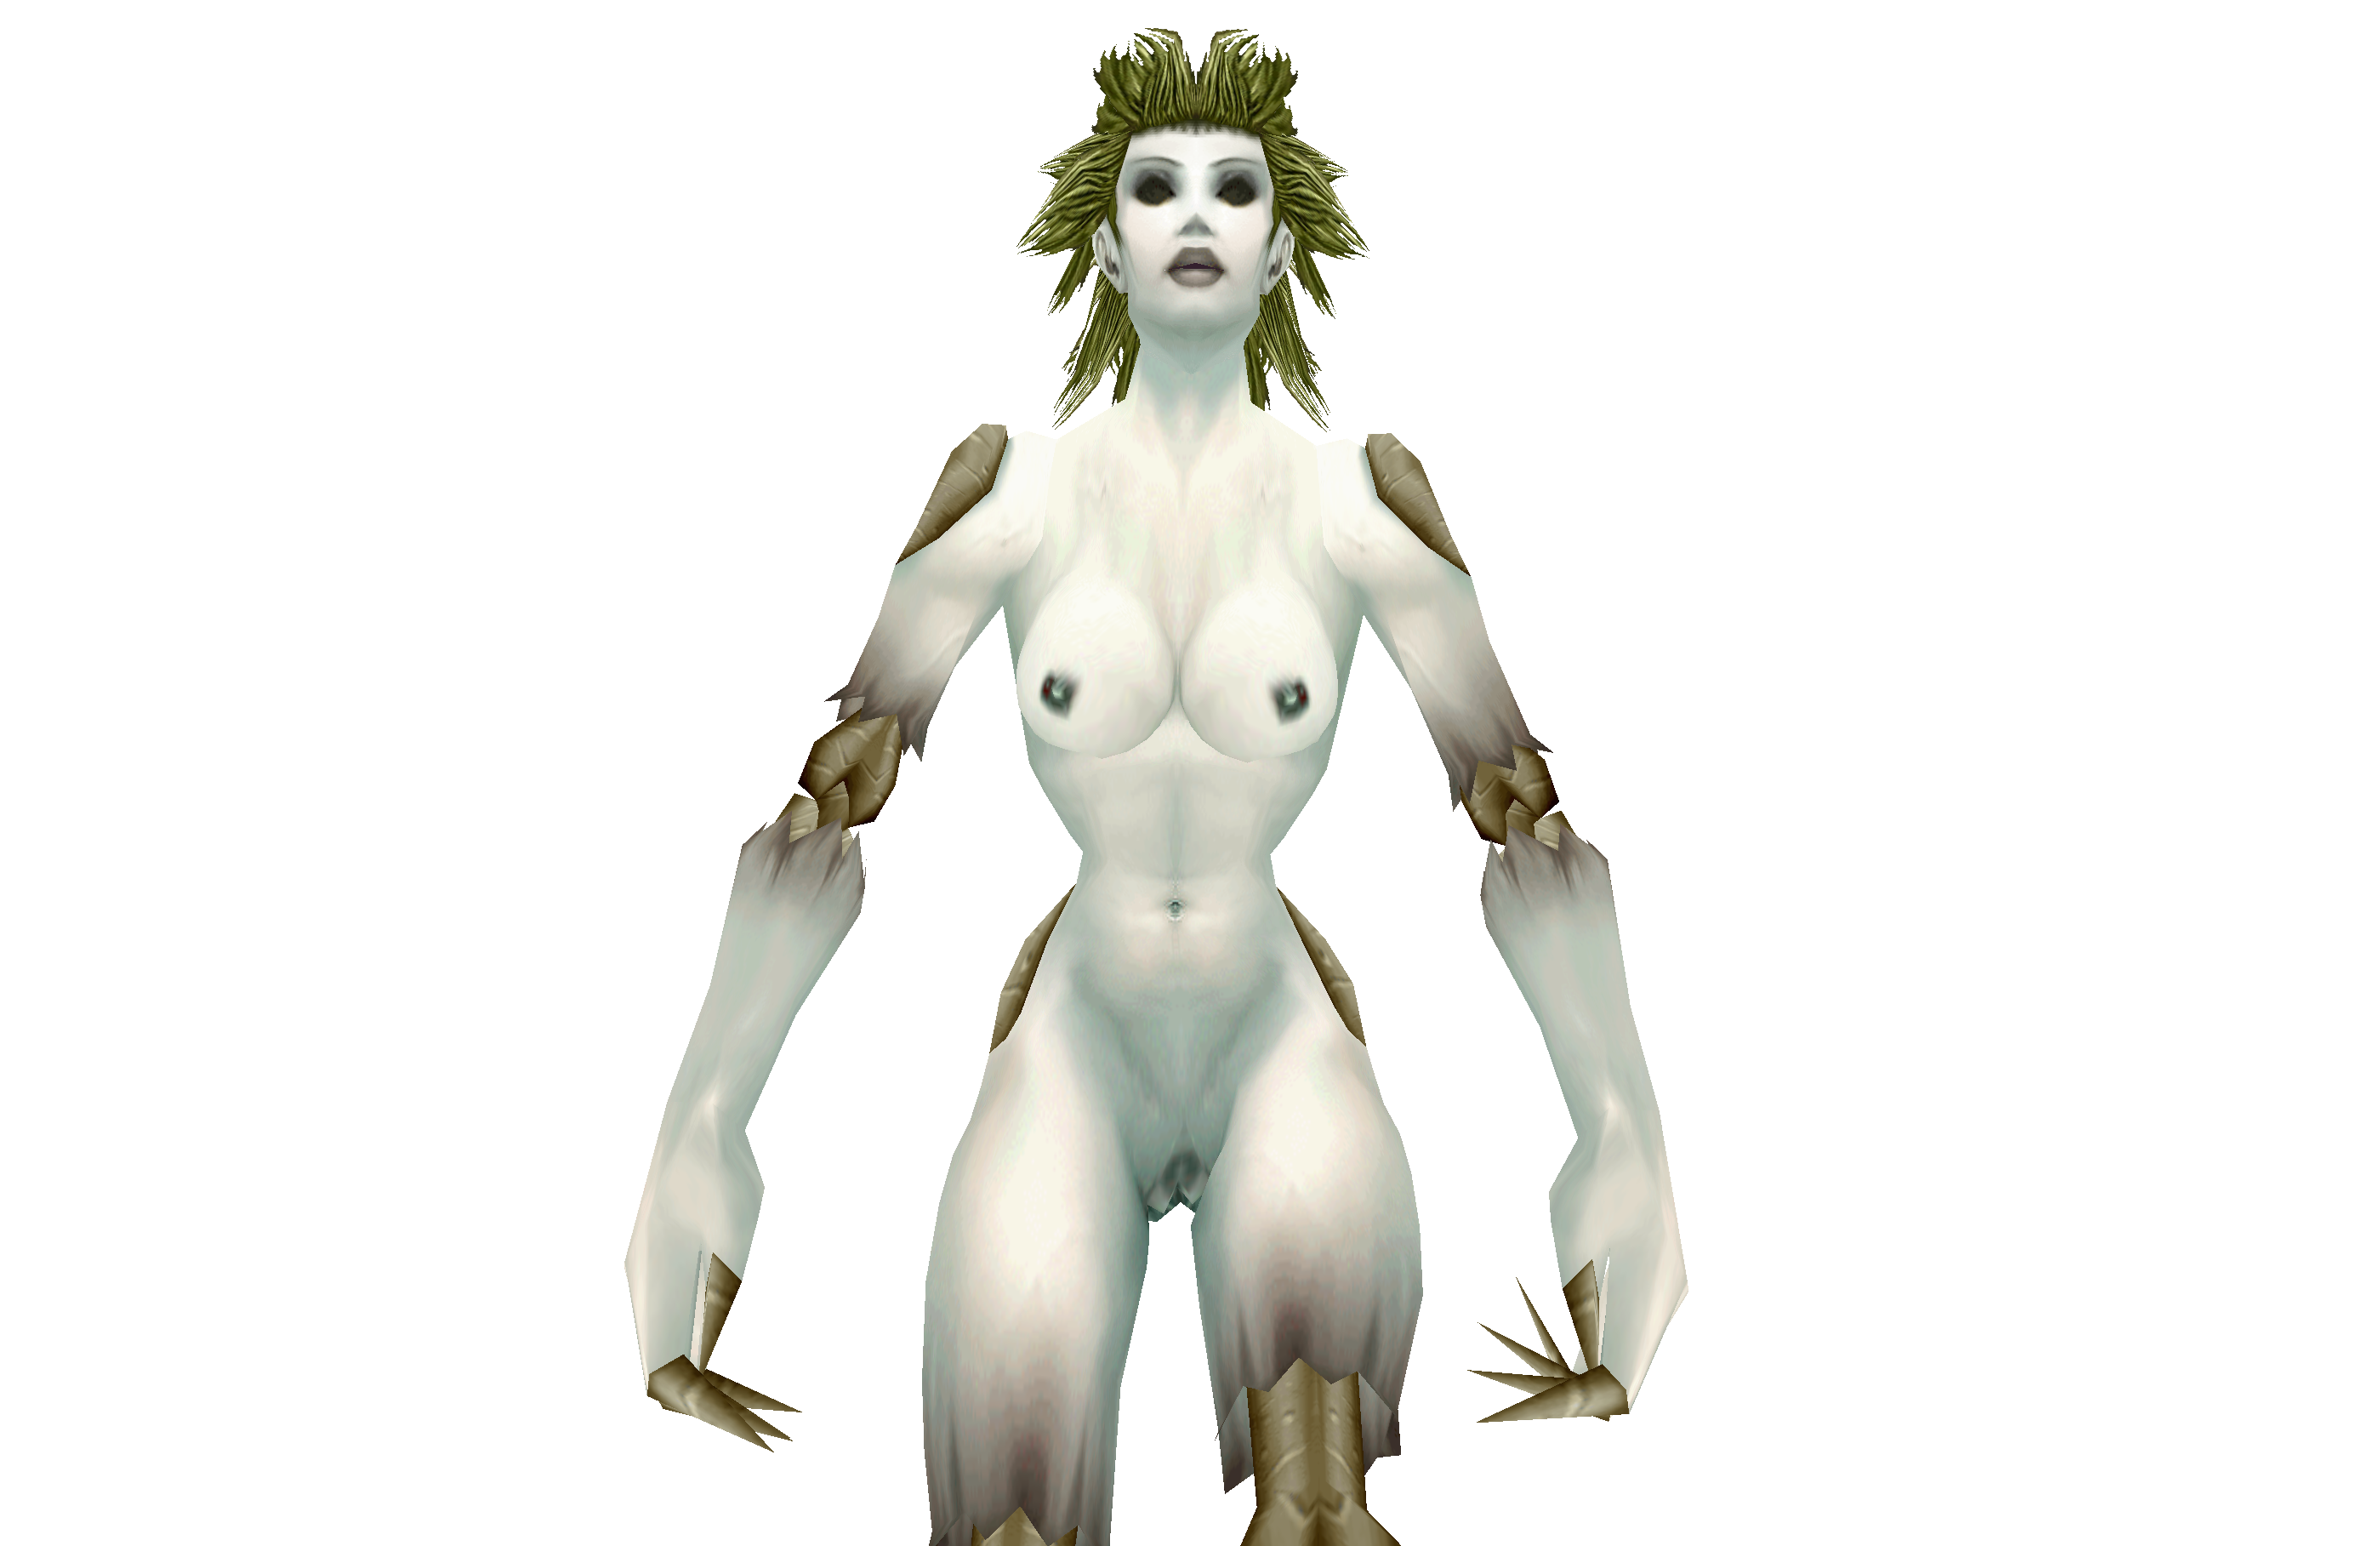 World of warcraft nude skin pics sexy film